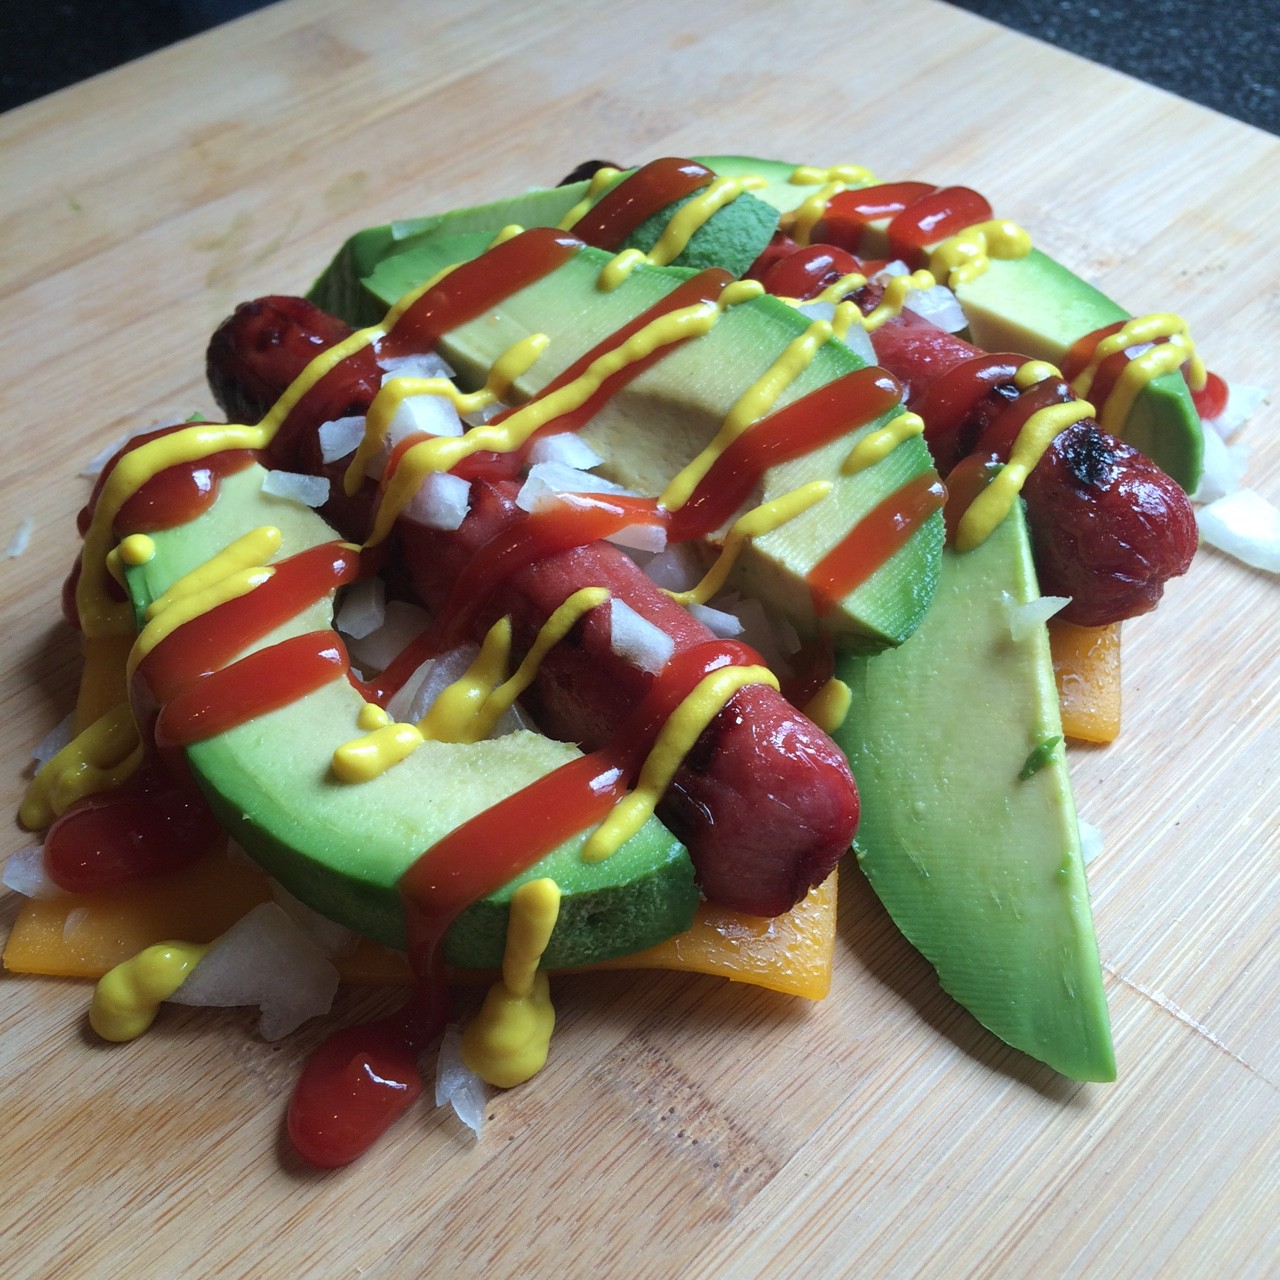 Summer is here and so is this fun hot dog recipe